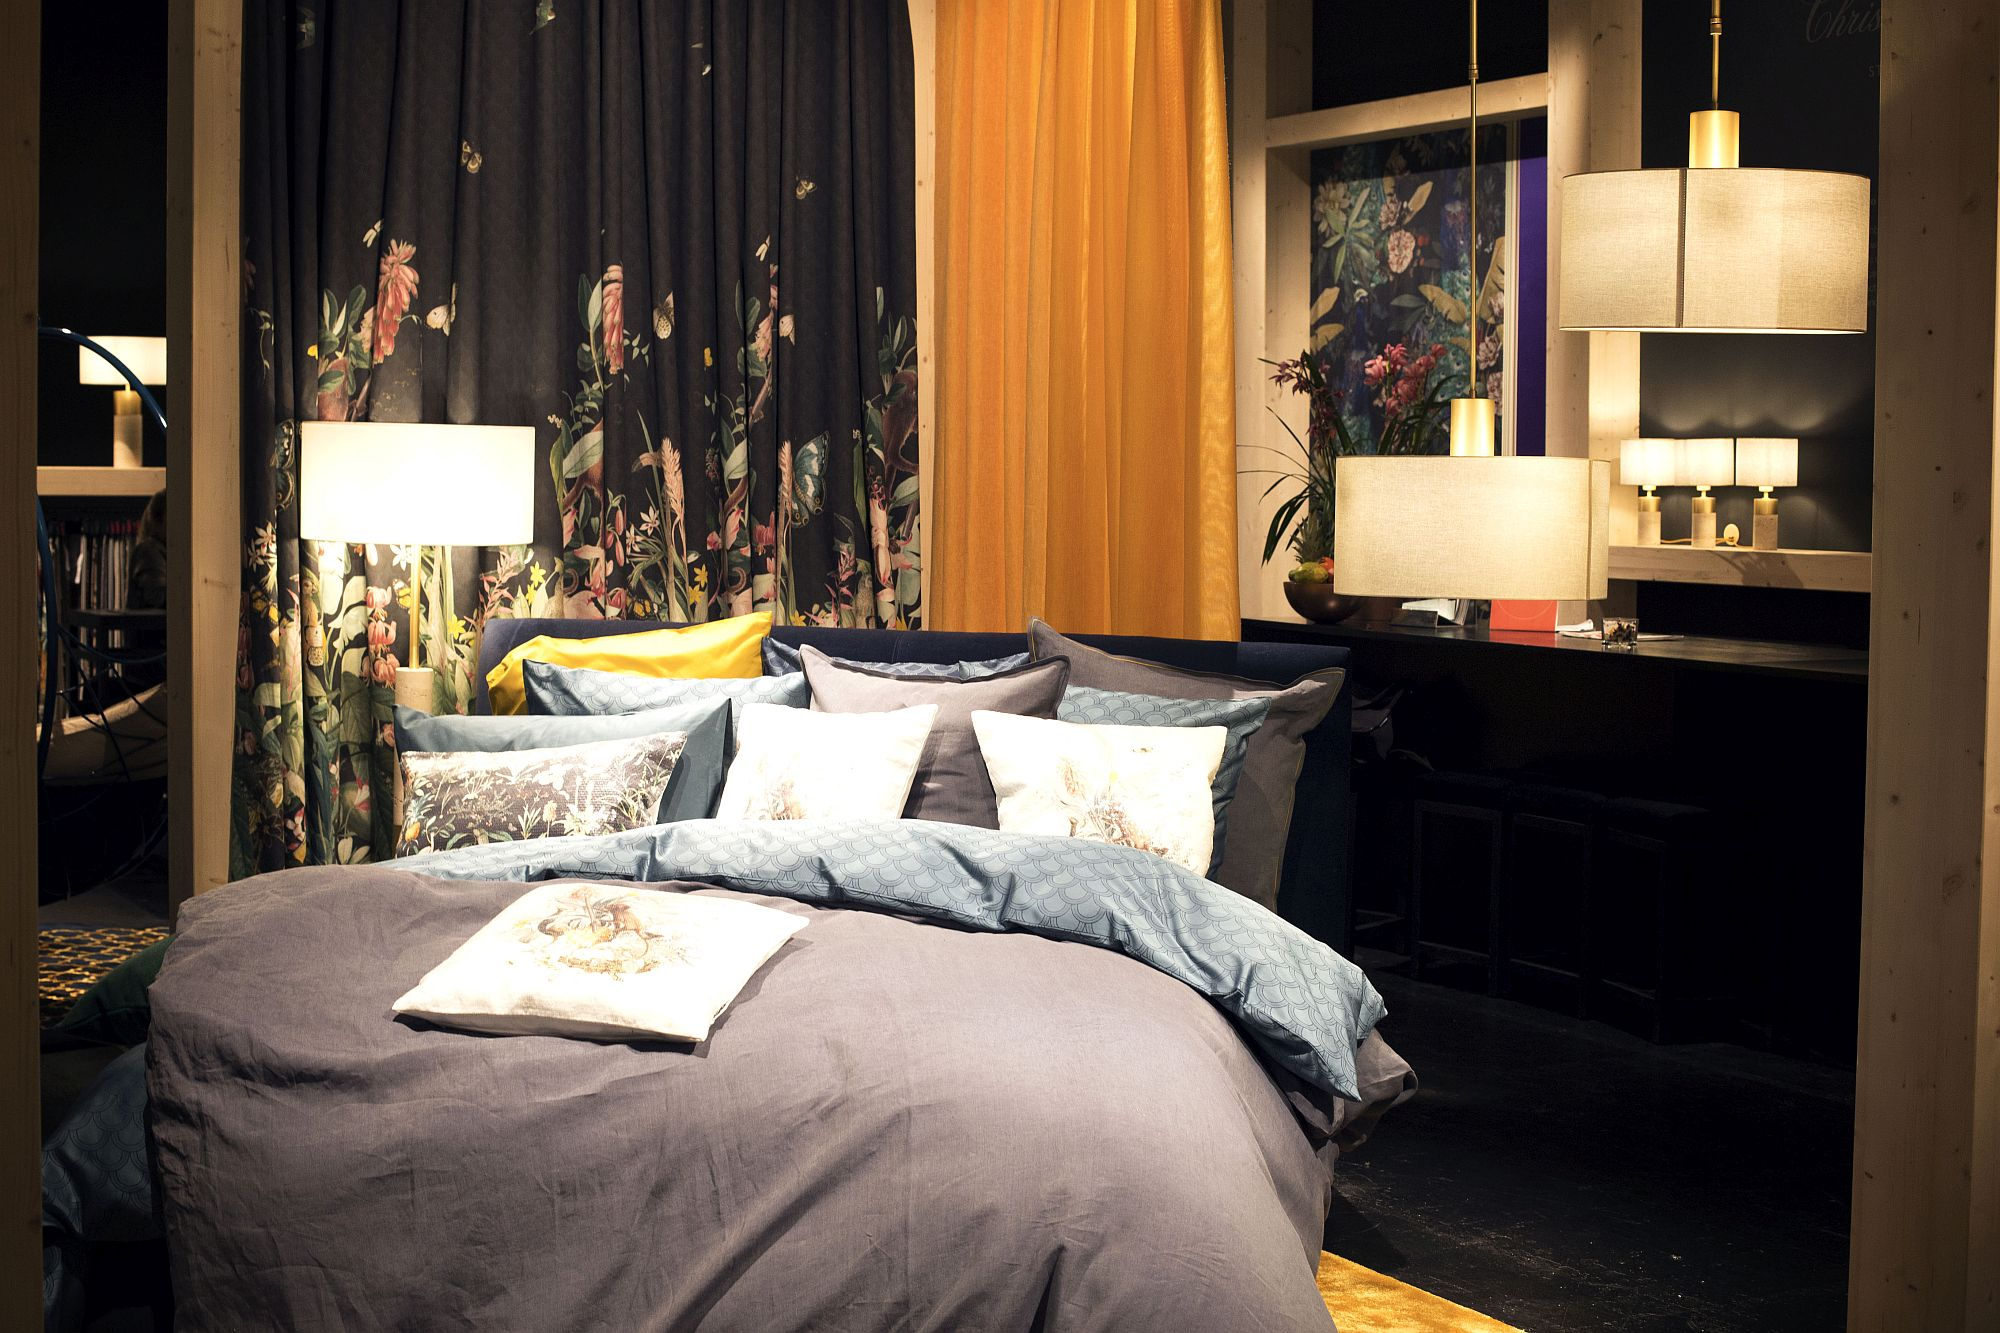 Upgrade-the-comfort-level-of-your-bedroom-with-comfy-new-textiles